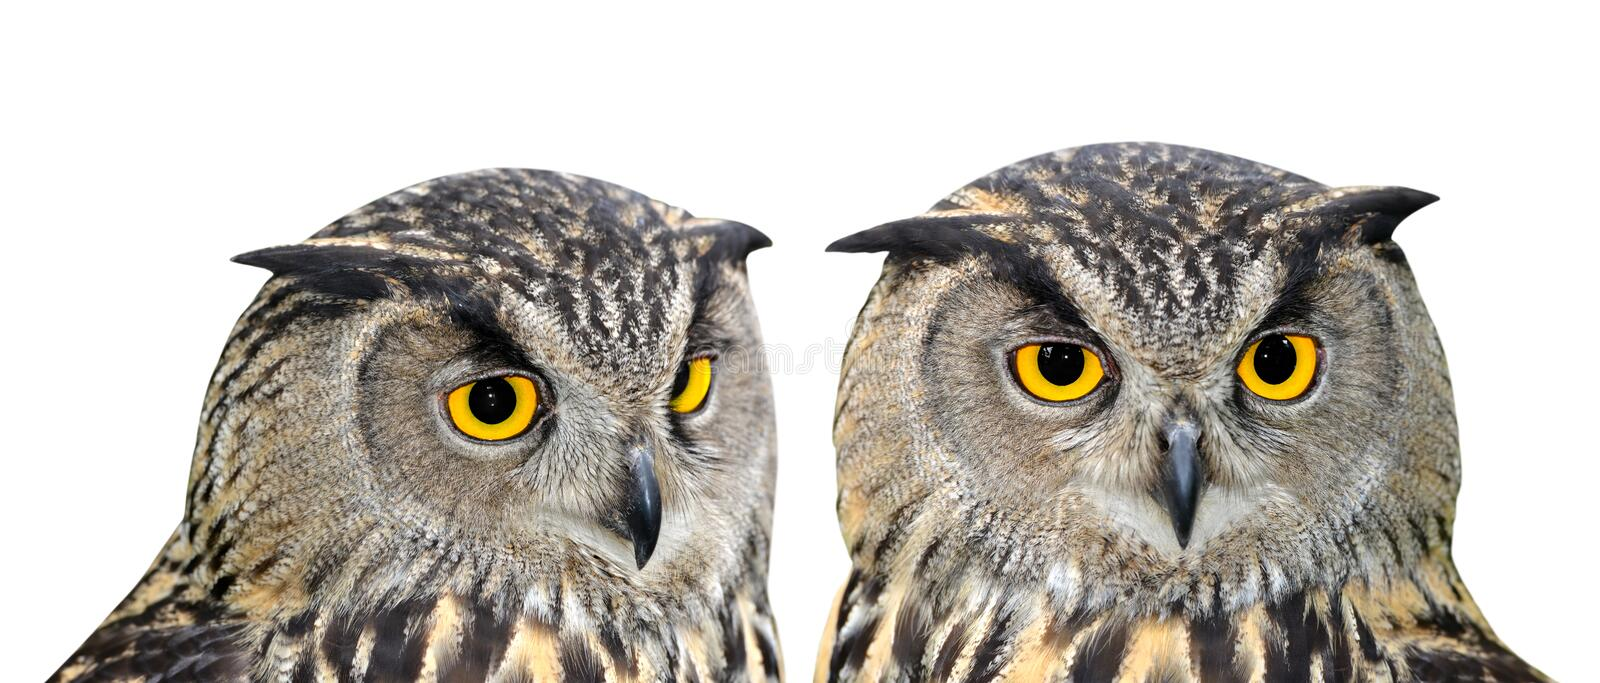 Download Eagle Owl stock image. Image of danger, fear, eagle, fearless - 39454143